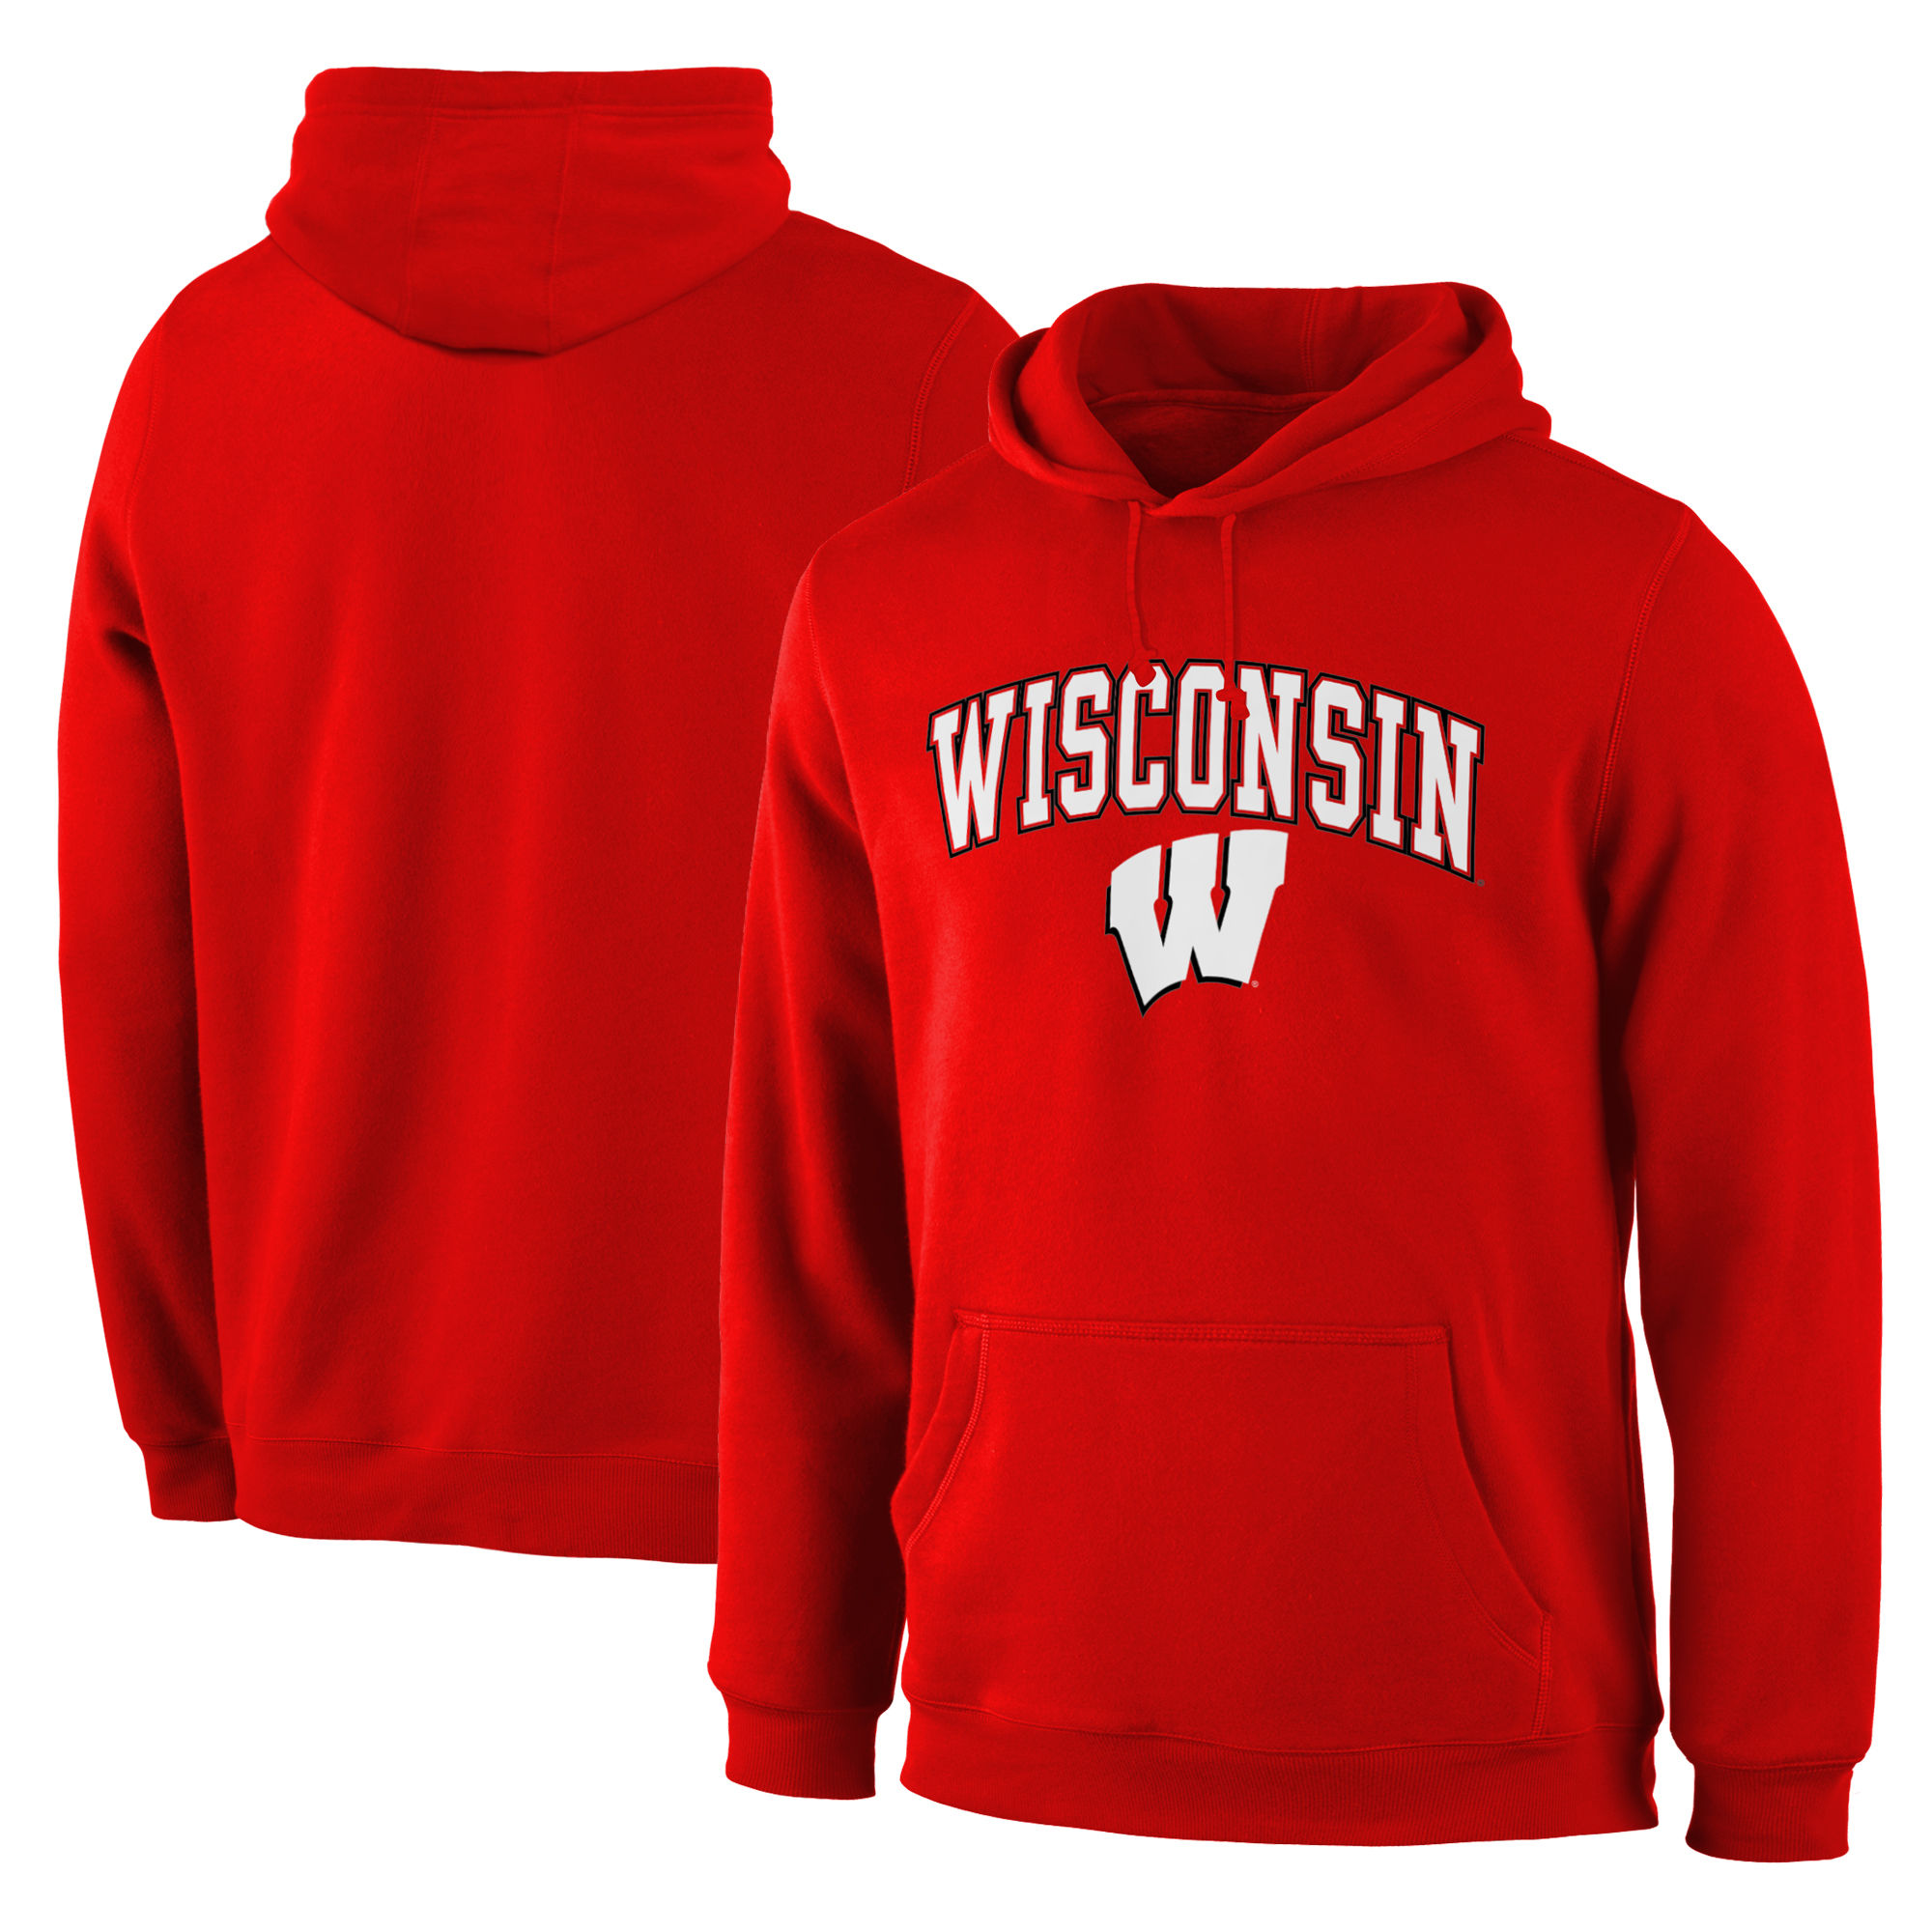 Wisconsin Badgers Red Campus Pullover Hoodie